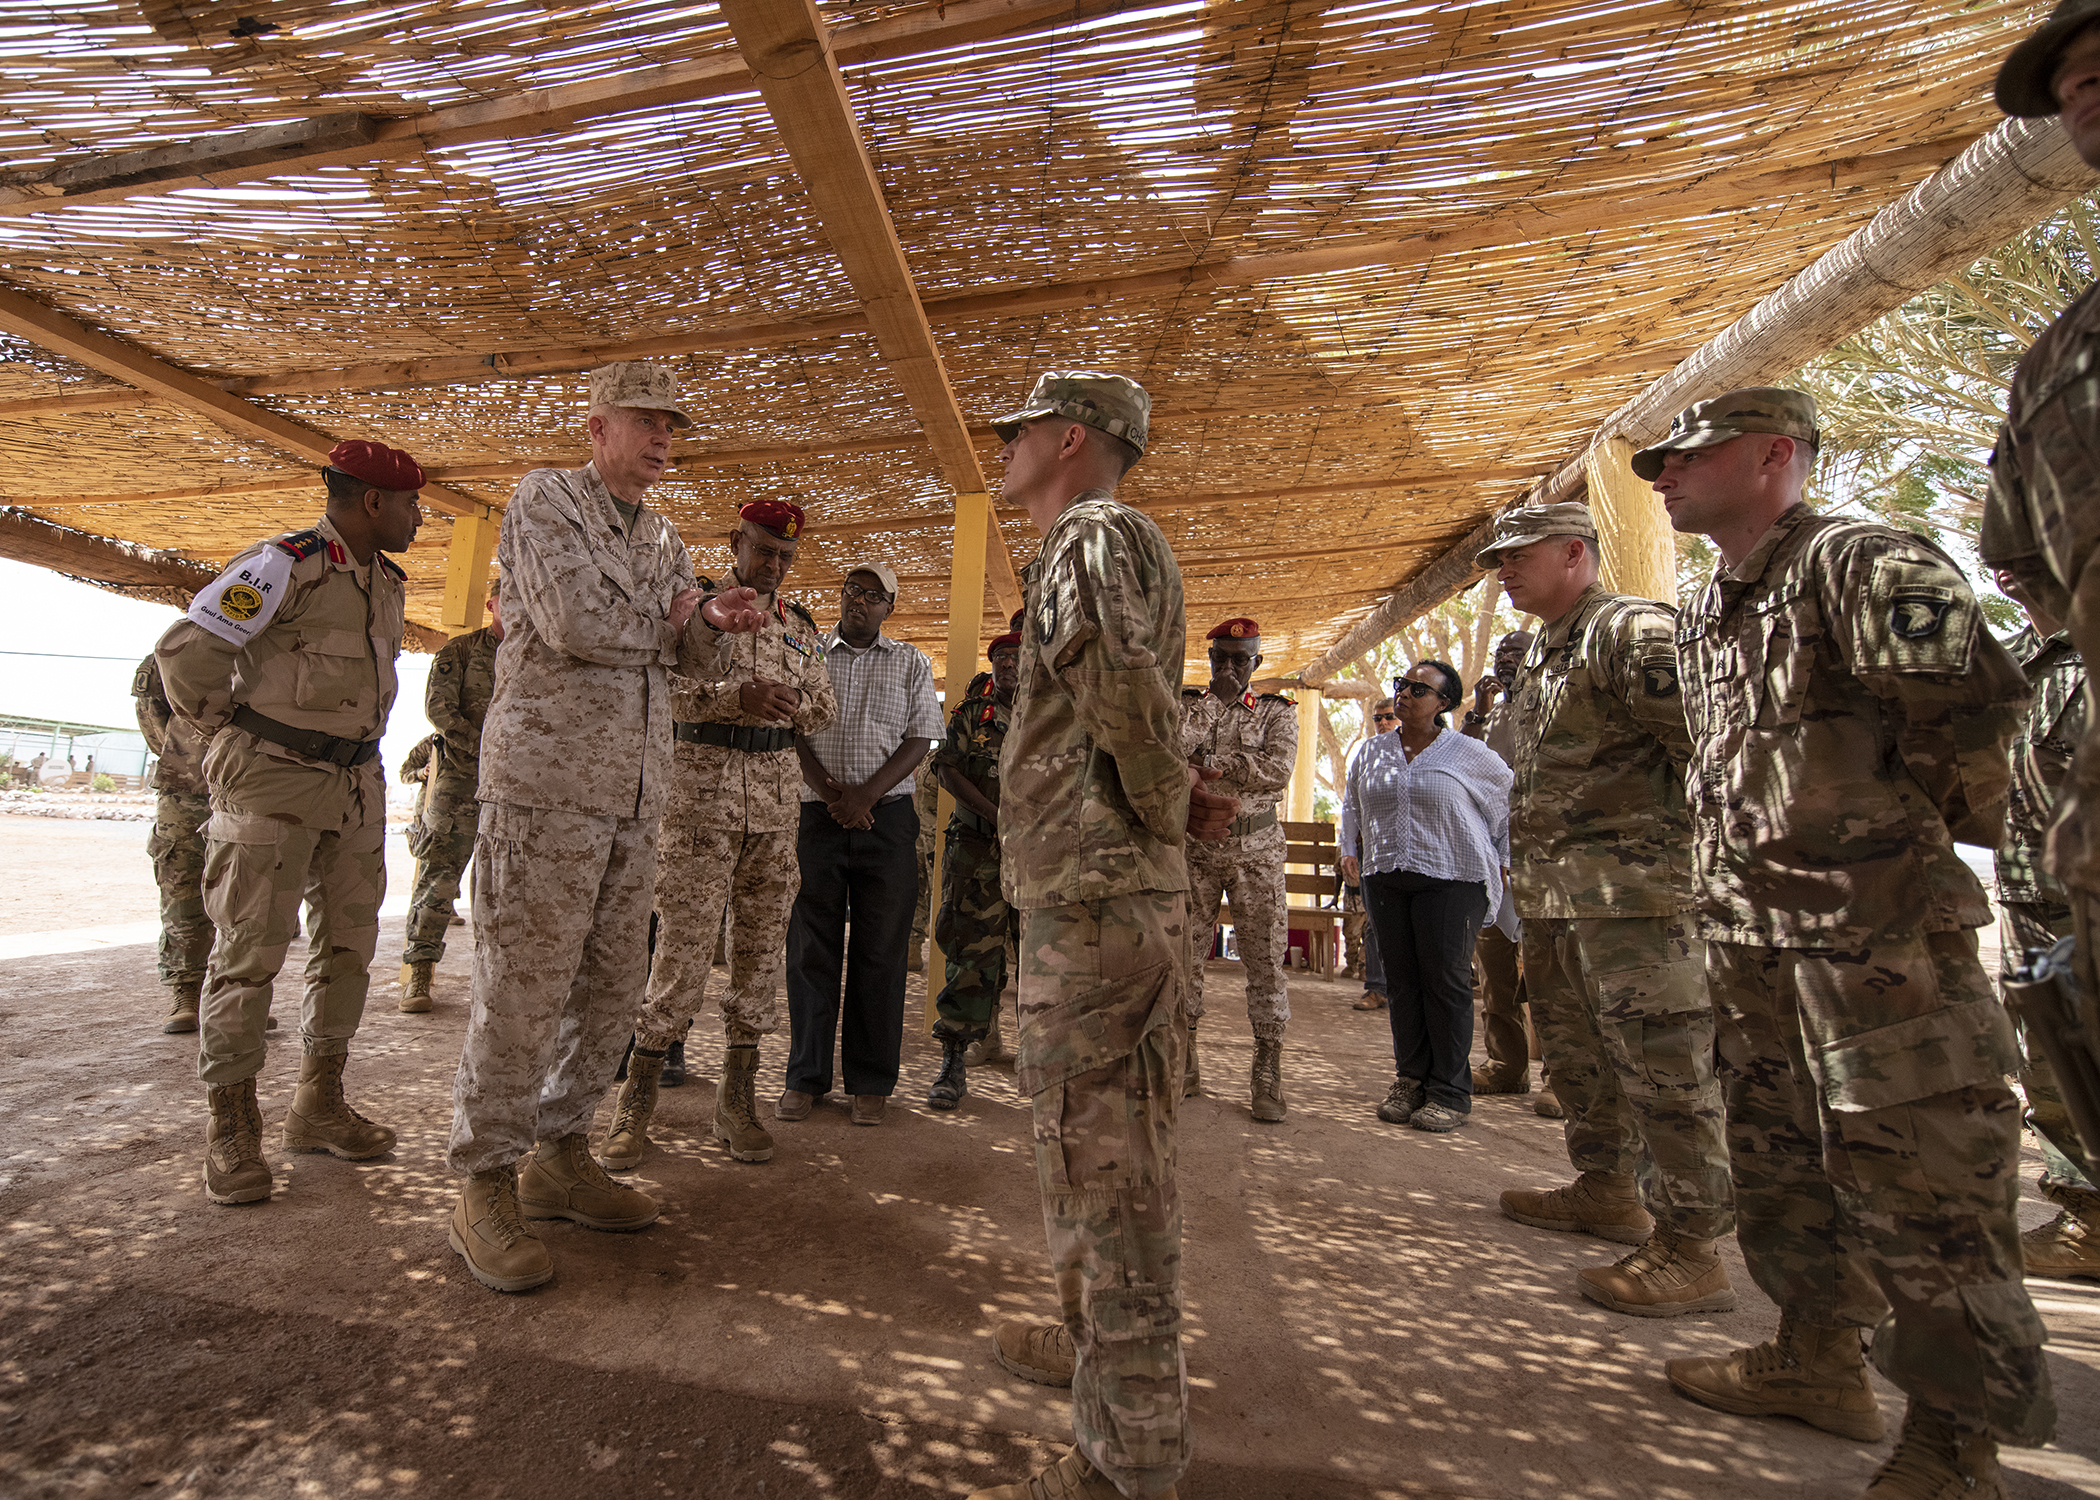 U.S. Marine Corps Gen. Thomas D. Waldhauser, left center, commander of U.S. Africa Command, addresses U.S. Army Soldiers fromHeadquarters Company, 1-26 Infantry Battalion, 2nd Brigade Combat Team, 101st Airborne, assigned to Combined Joint Task Force-Horn of Africa, who train Rapid Intervention Battalion (RIB) soldiers during his visit with senior Djiboutian officials, including Chief of General Staff of the Djibouti Armed Forces Zakaria Cheik Ibrahim, at a training base in Djibouti, March 21, 2019. While in Djibouti, Waldhauser observed the ongoing growth and development of the RIB, the Djiboutian army's elite military force, which the U.S. is in the process of training and equipping at the request of the Djiboutian government. (U.S. Air Force photo by Tech. Sgt. Shawn Nickel)